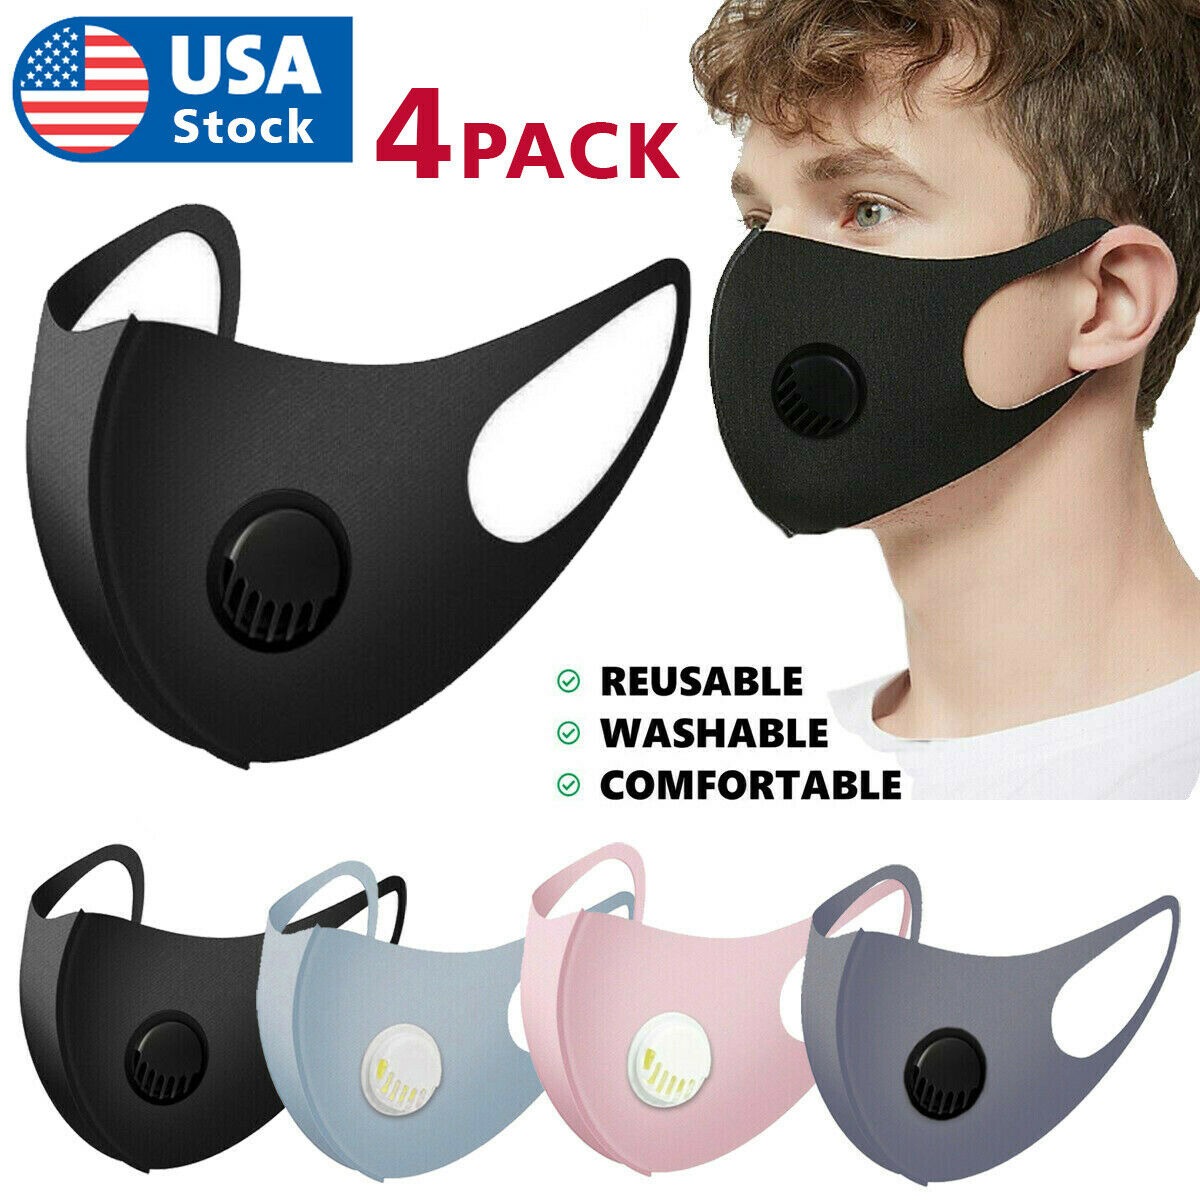 4PCS Face Mask Reusable Washable Adult Cloth Breathable With Breathing Valve Accessories